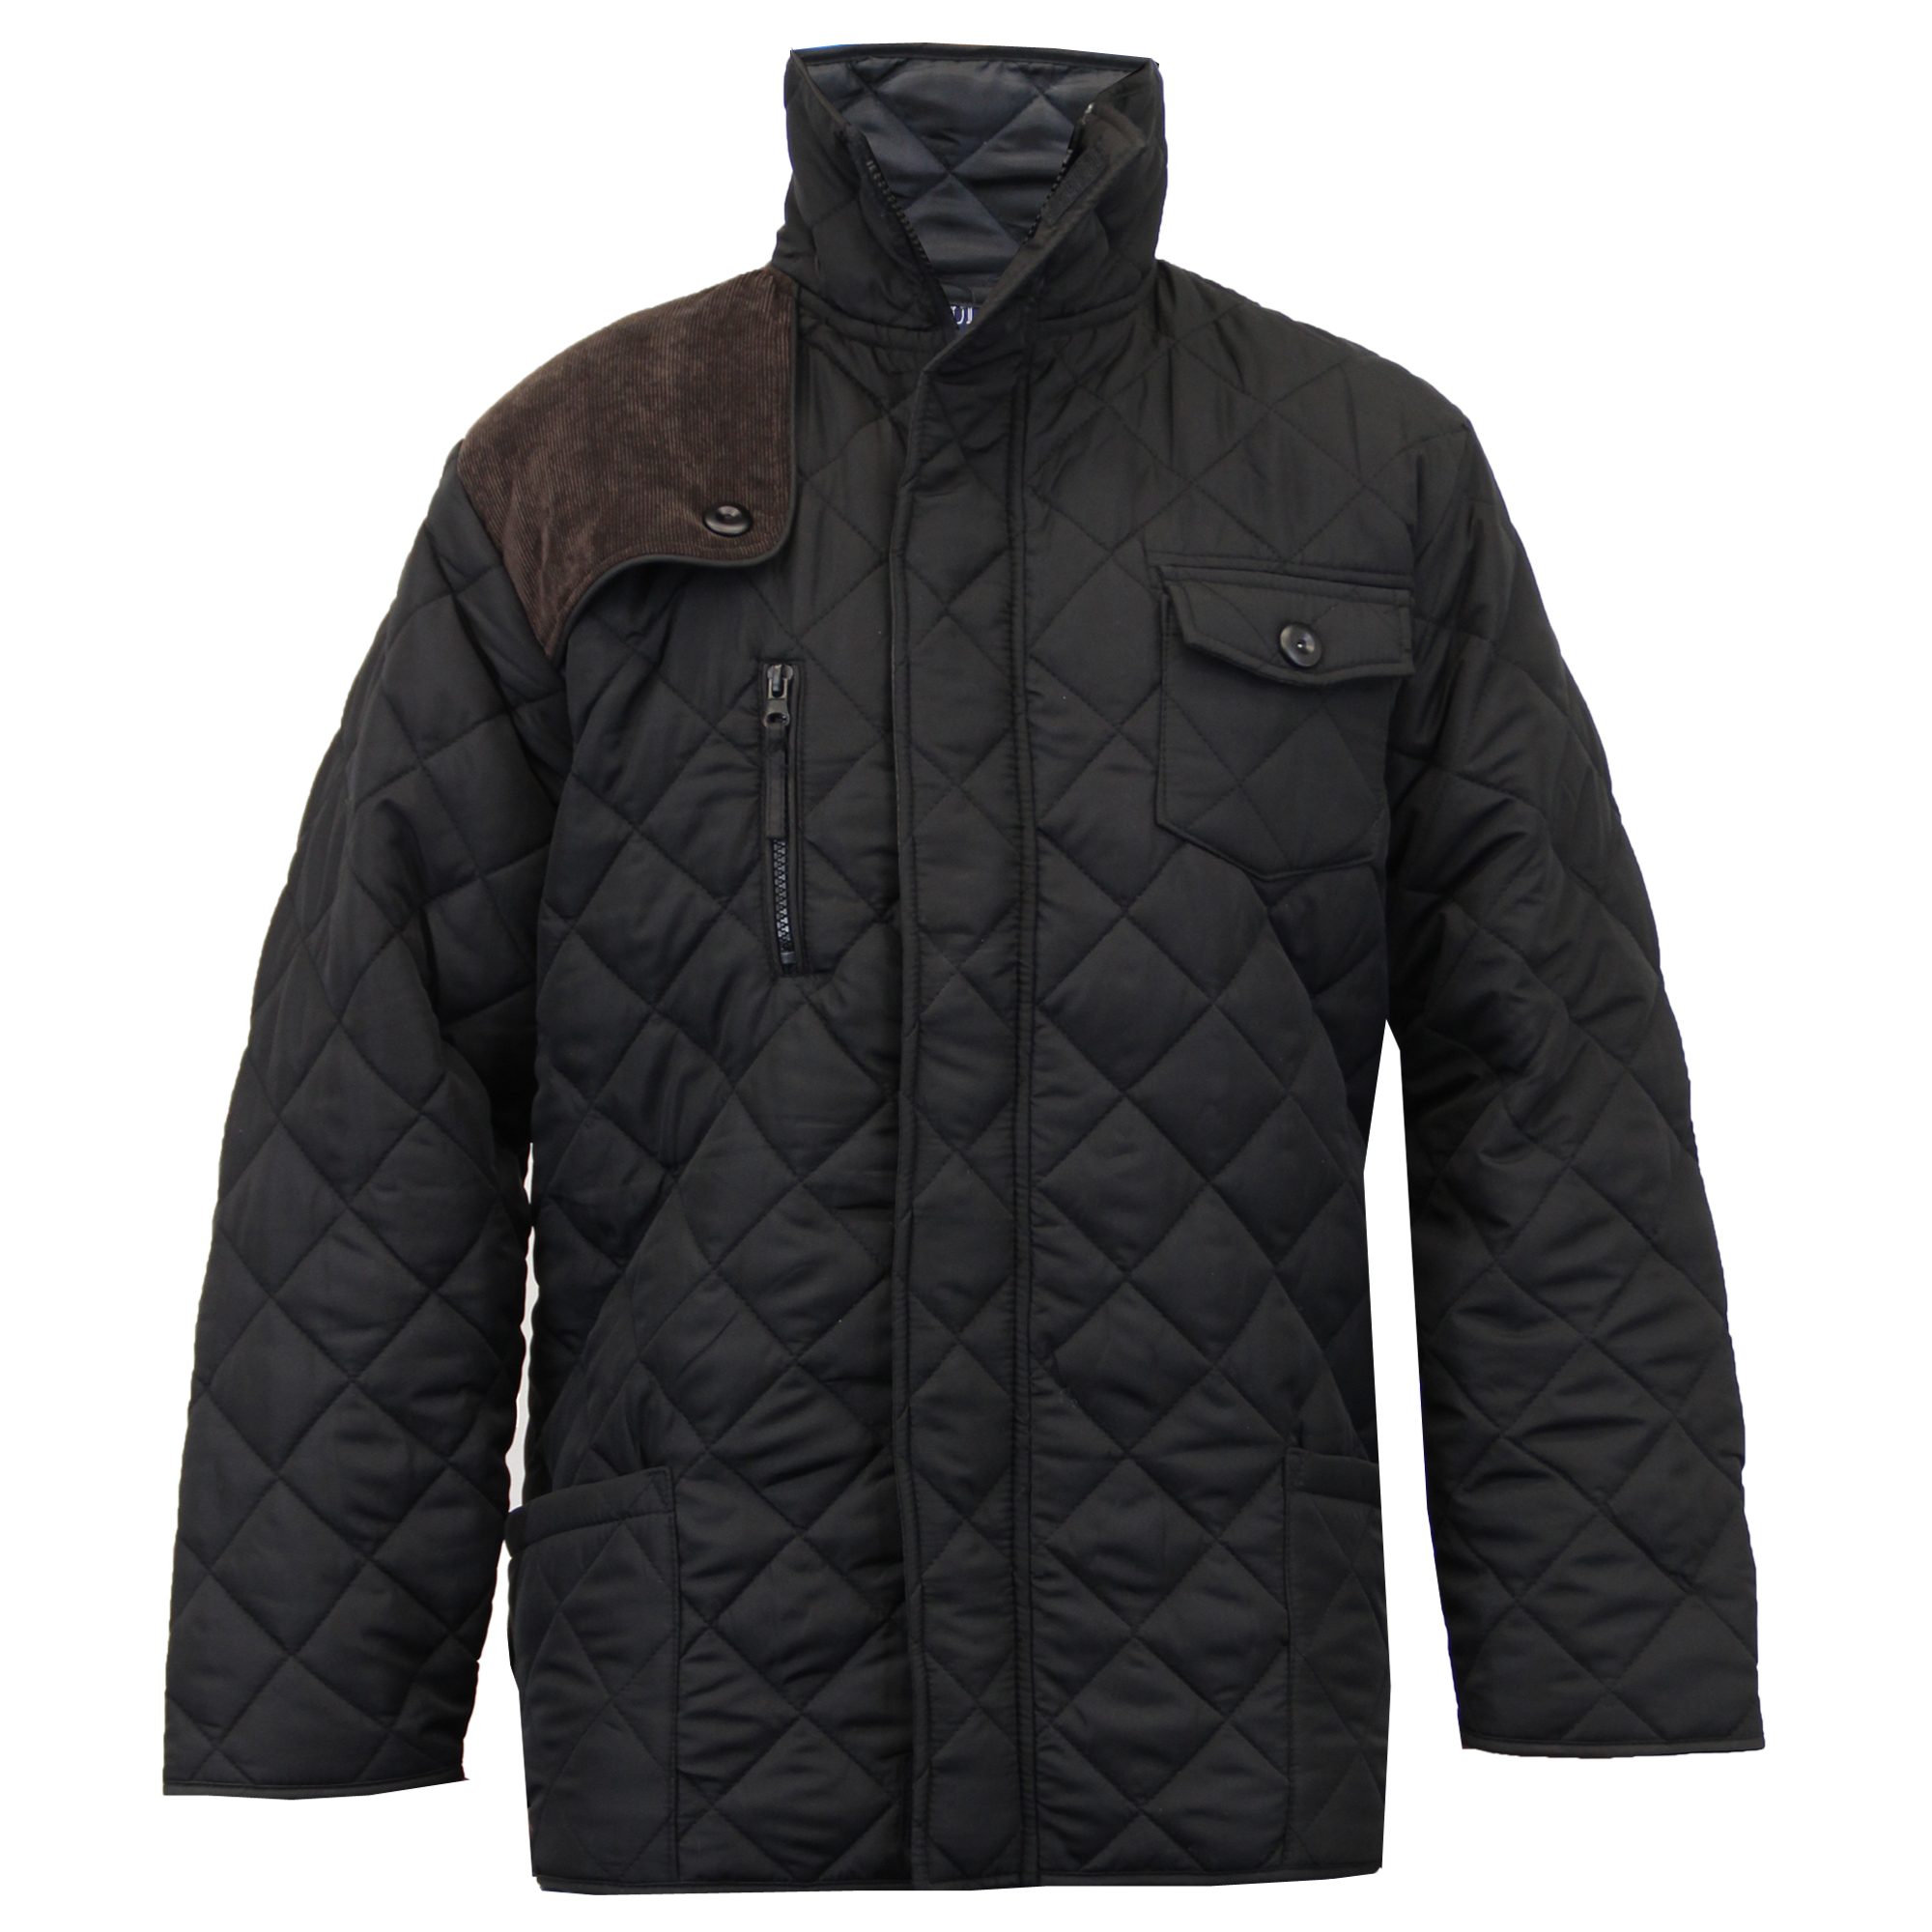 71d958864cc4 Boys Soul Star Jacket Kids Coat Diamond Quilted Padded Cord Patches ...